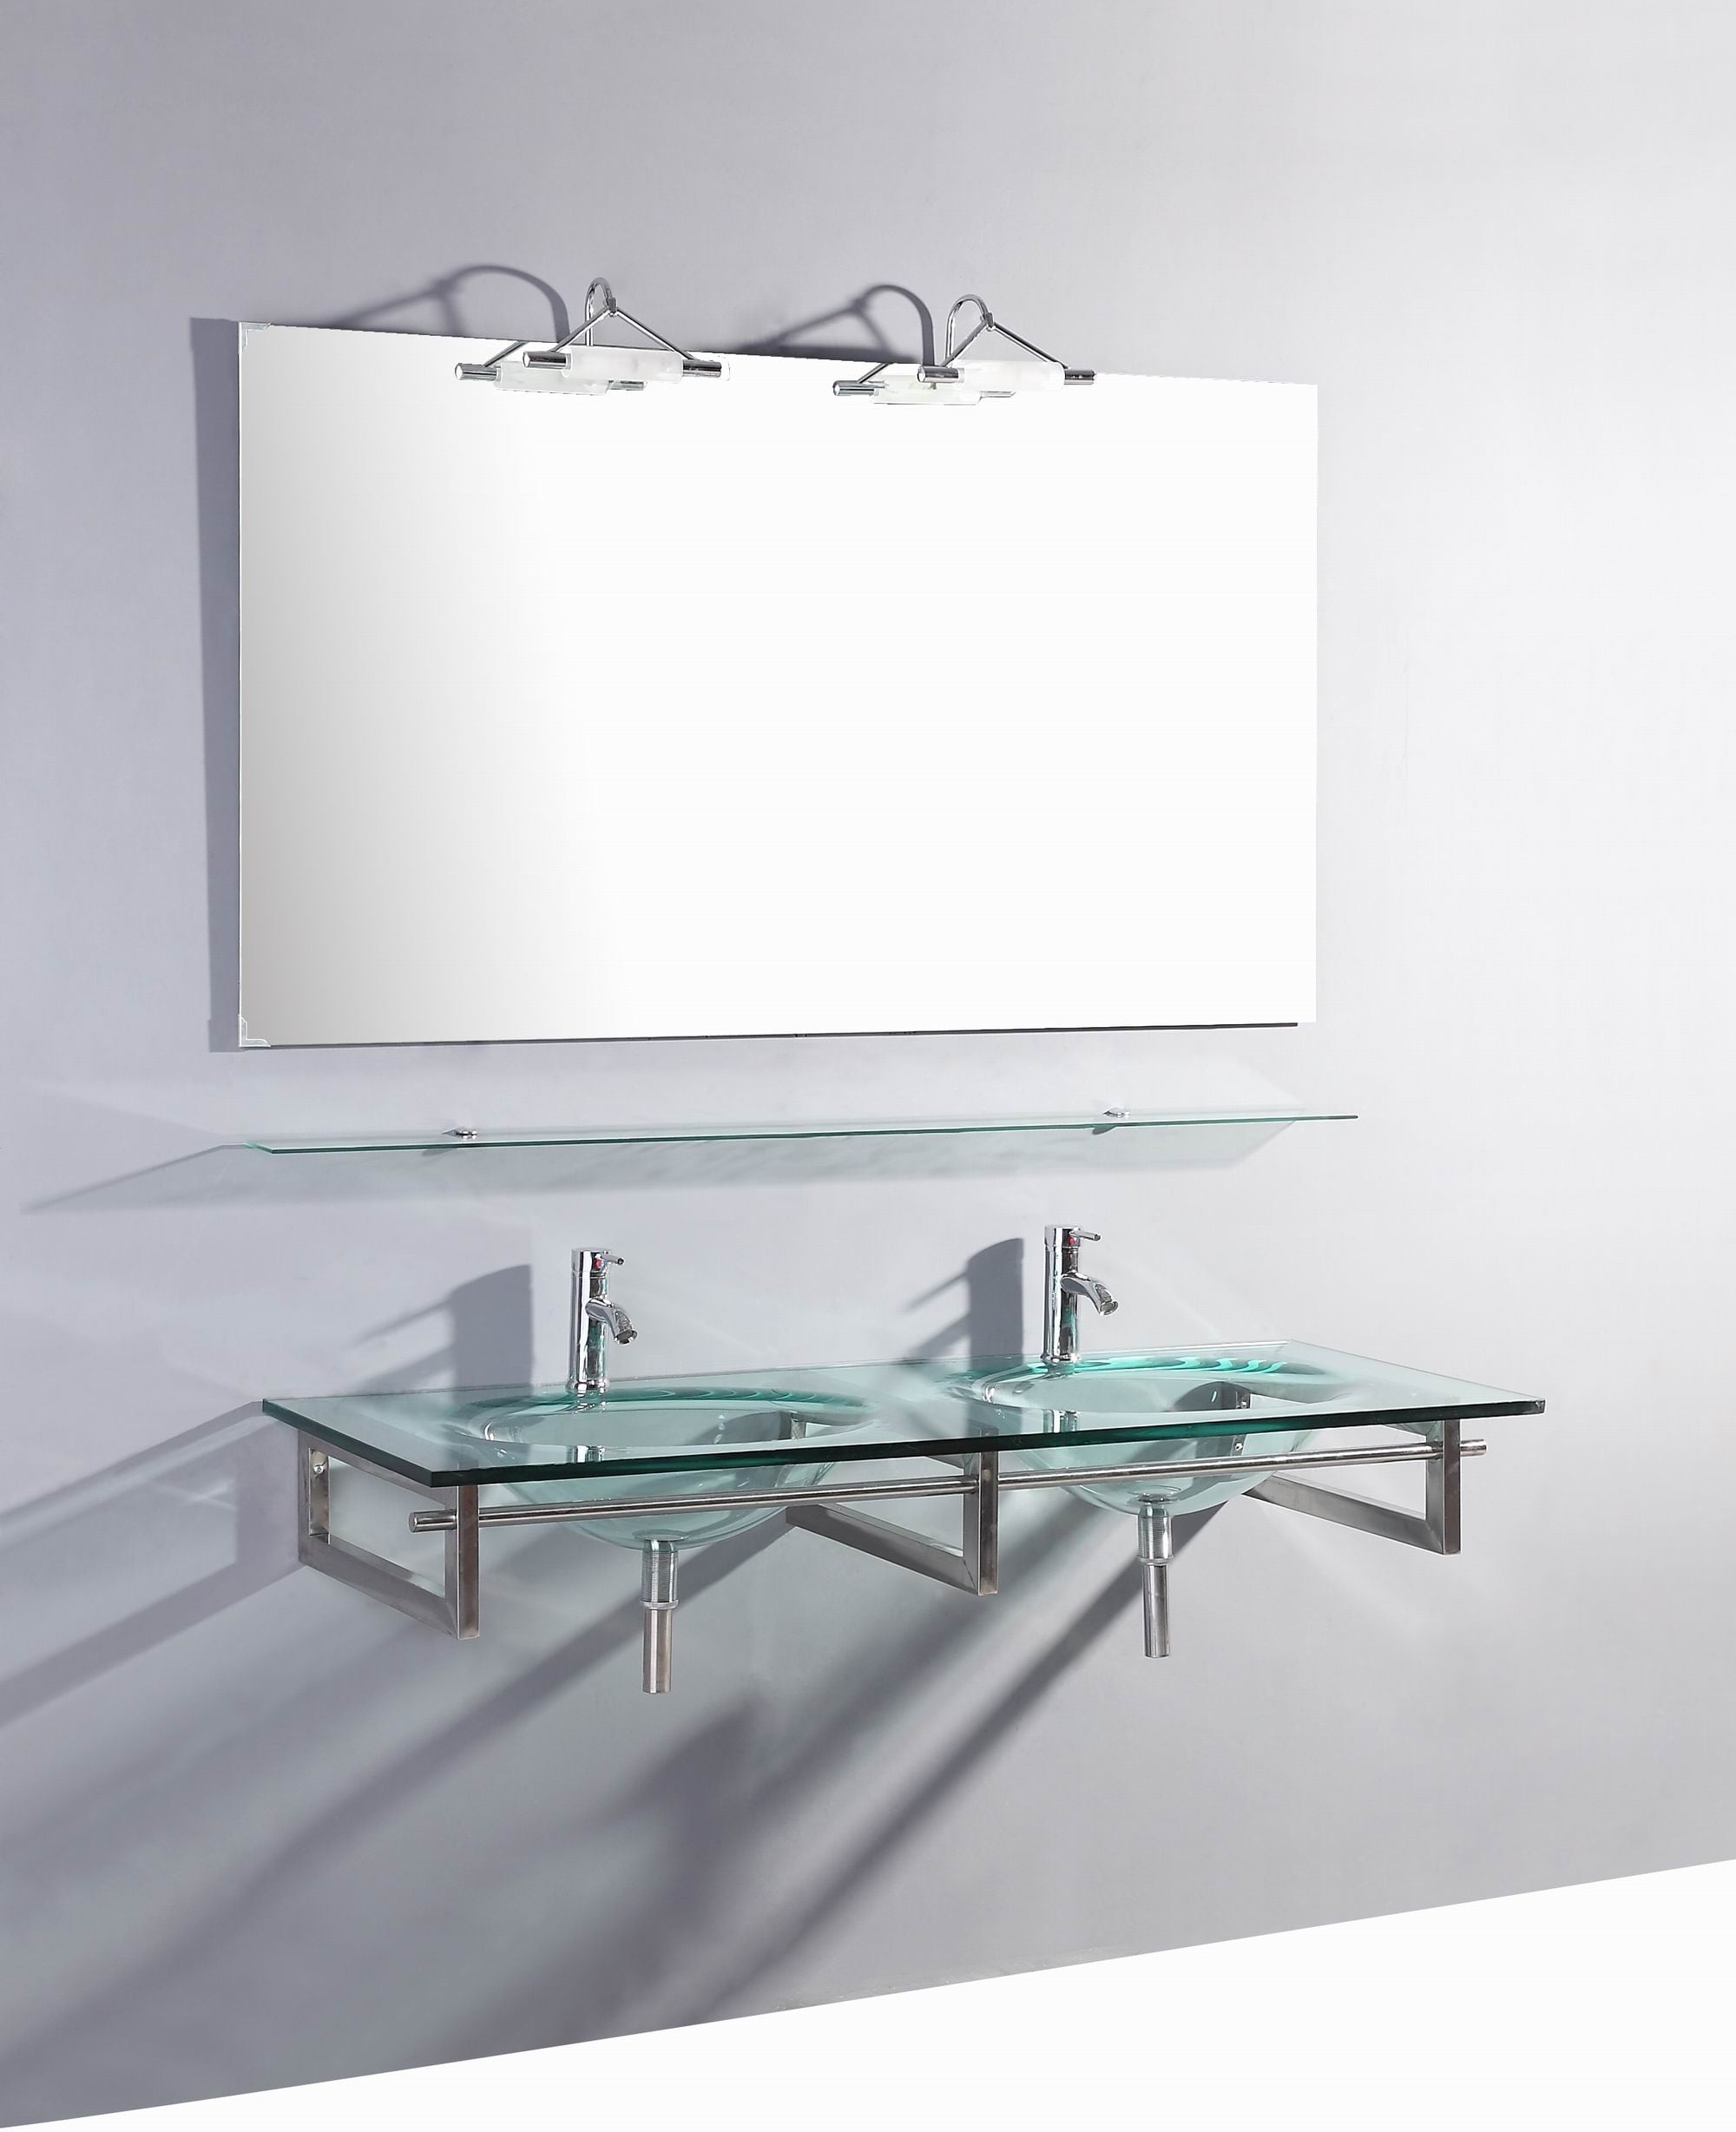 Sets bathroom vanity ari kitchen second - 55 Inch Belvedere Modern Wall Mounted Glass Double Bathroom Vanity